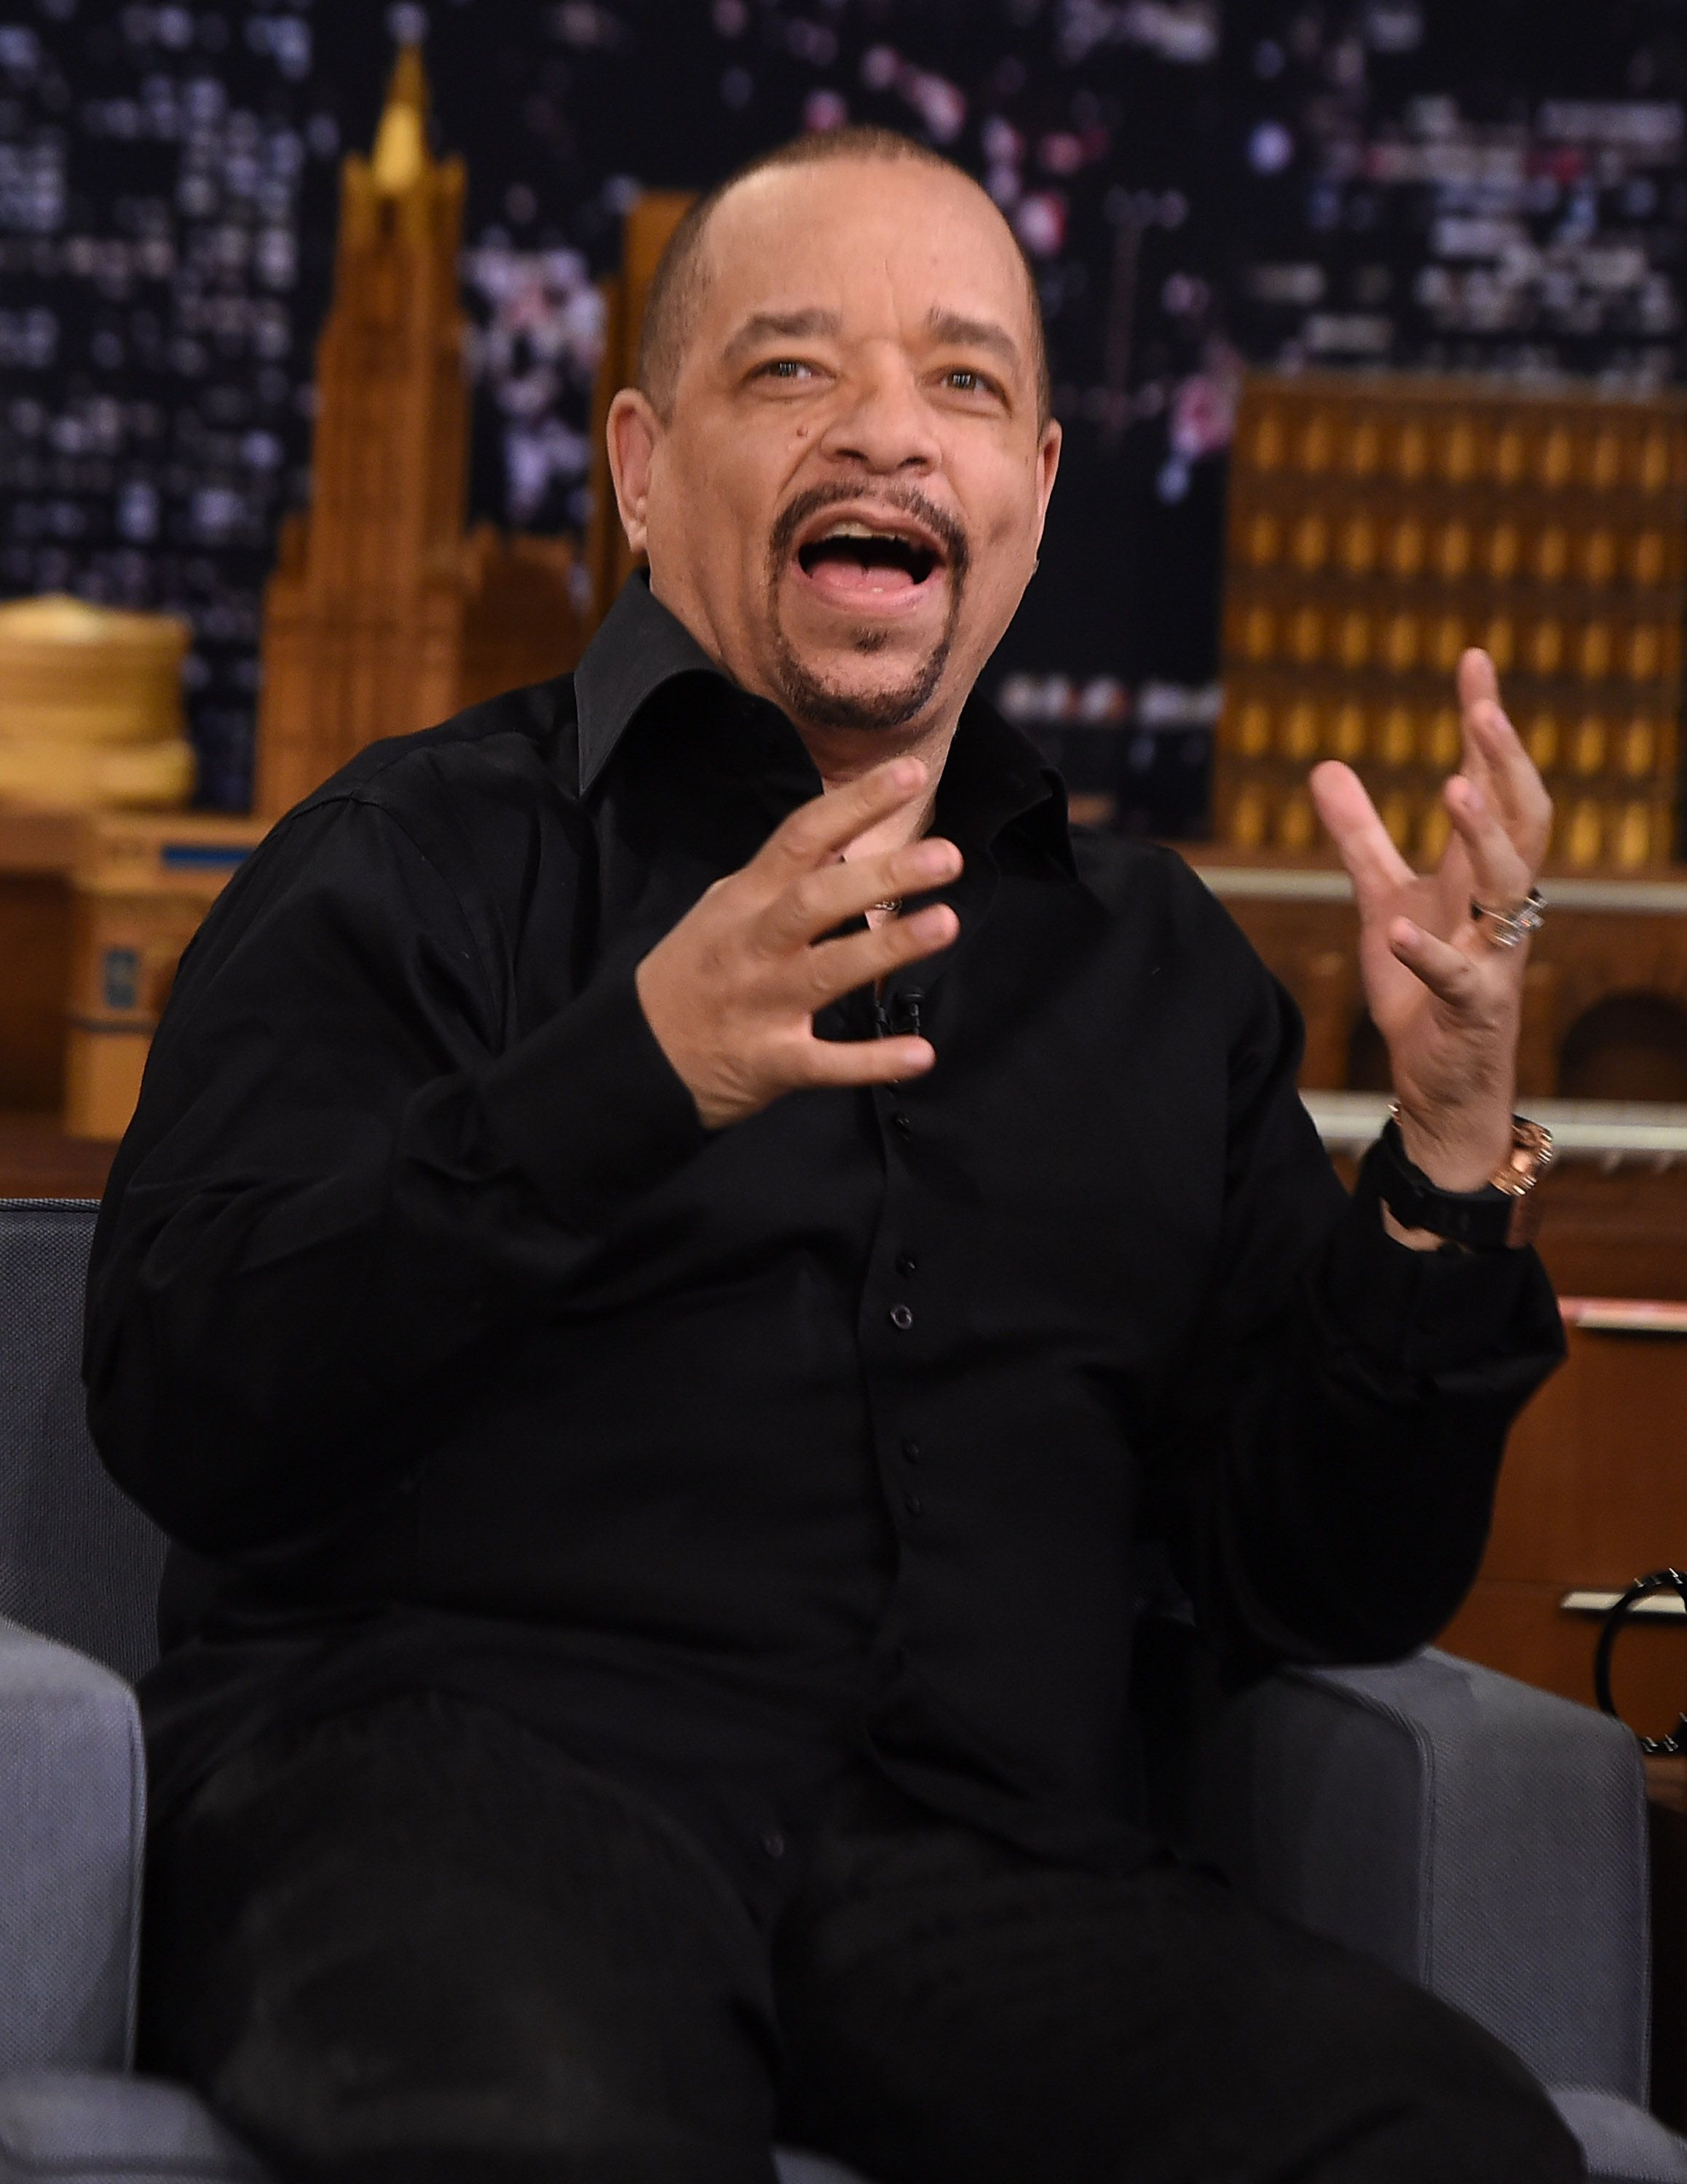 """Ice T Visits """"The Tonight Show Starring Jimmy Fallon"""" on February 25, 2015 in New York City. 